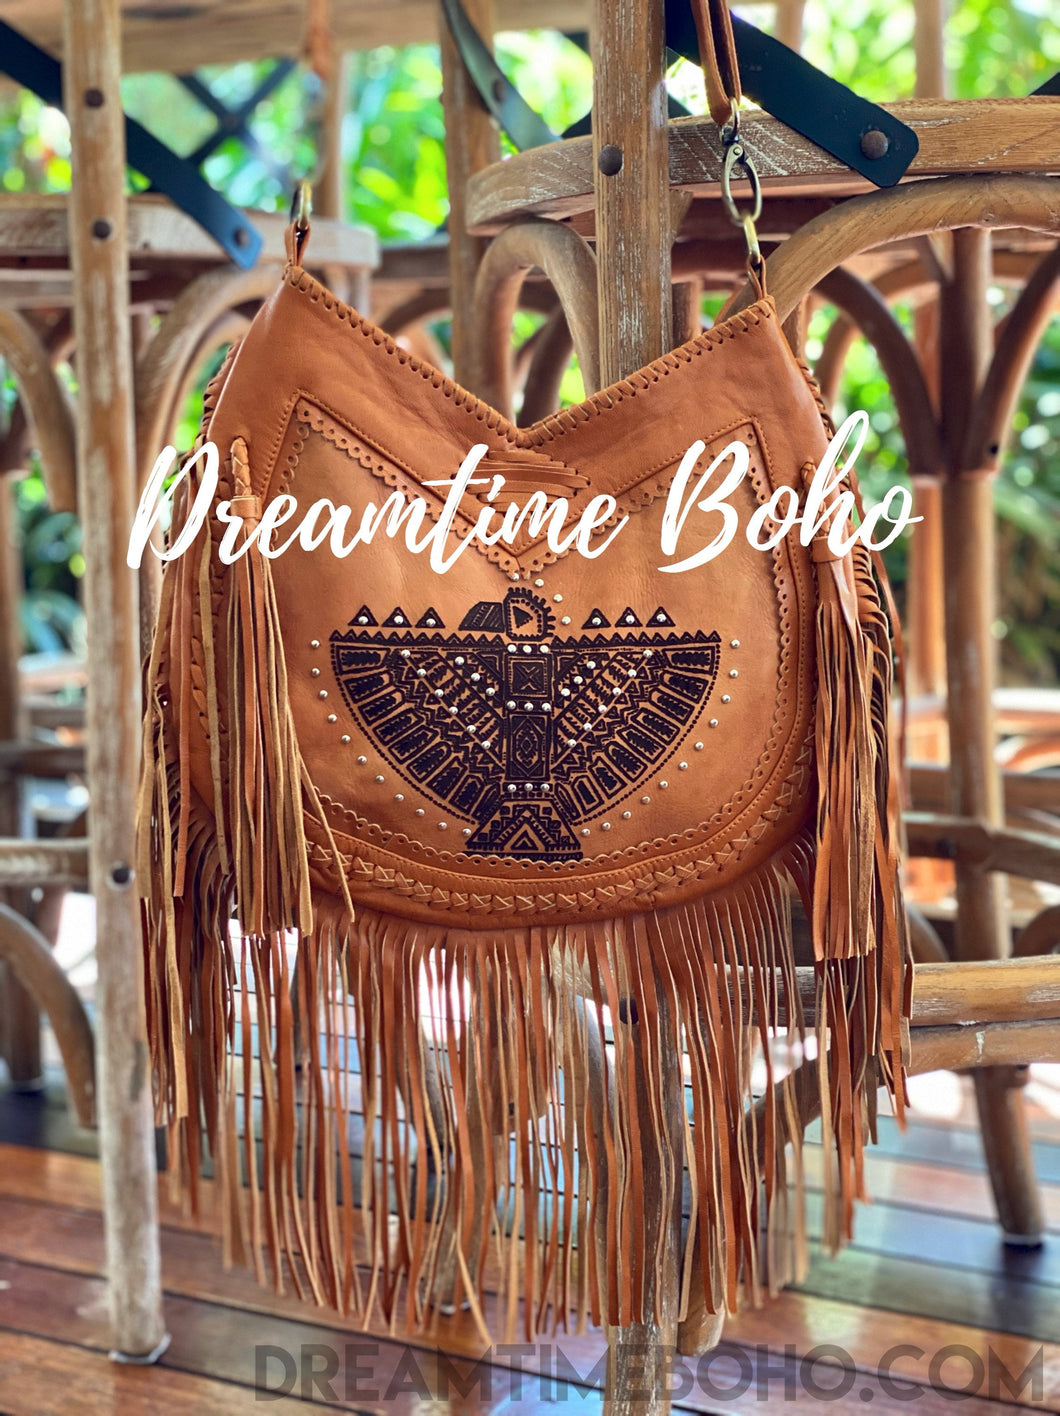 AZTEC EAGLE FRINGED LEATHER BOHO BAG-Boho Fringe Bag-Dreamtime Boho-Dreamtime Boho